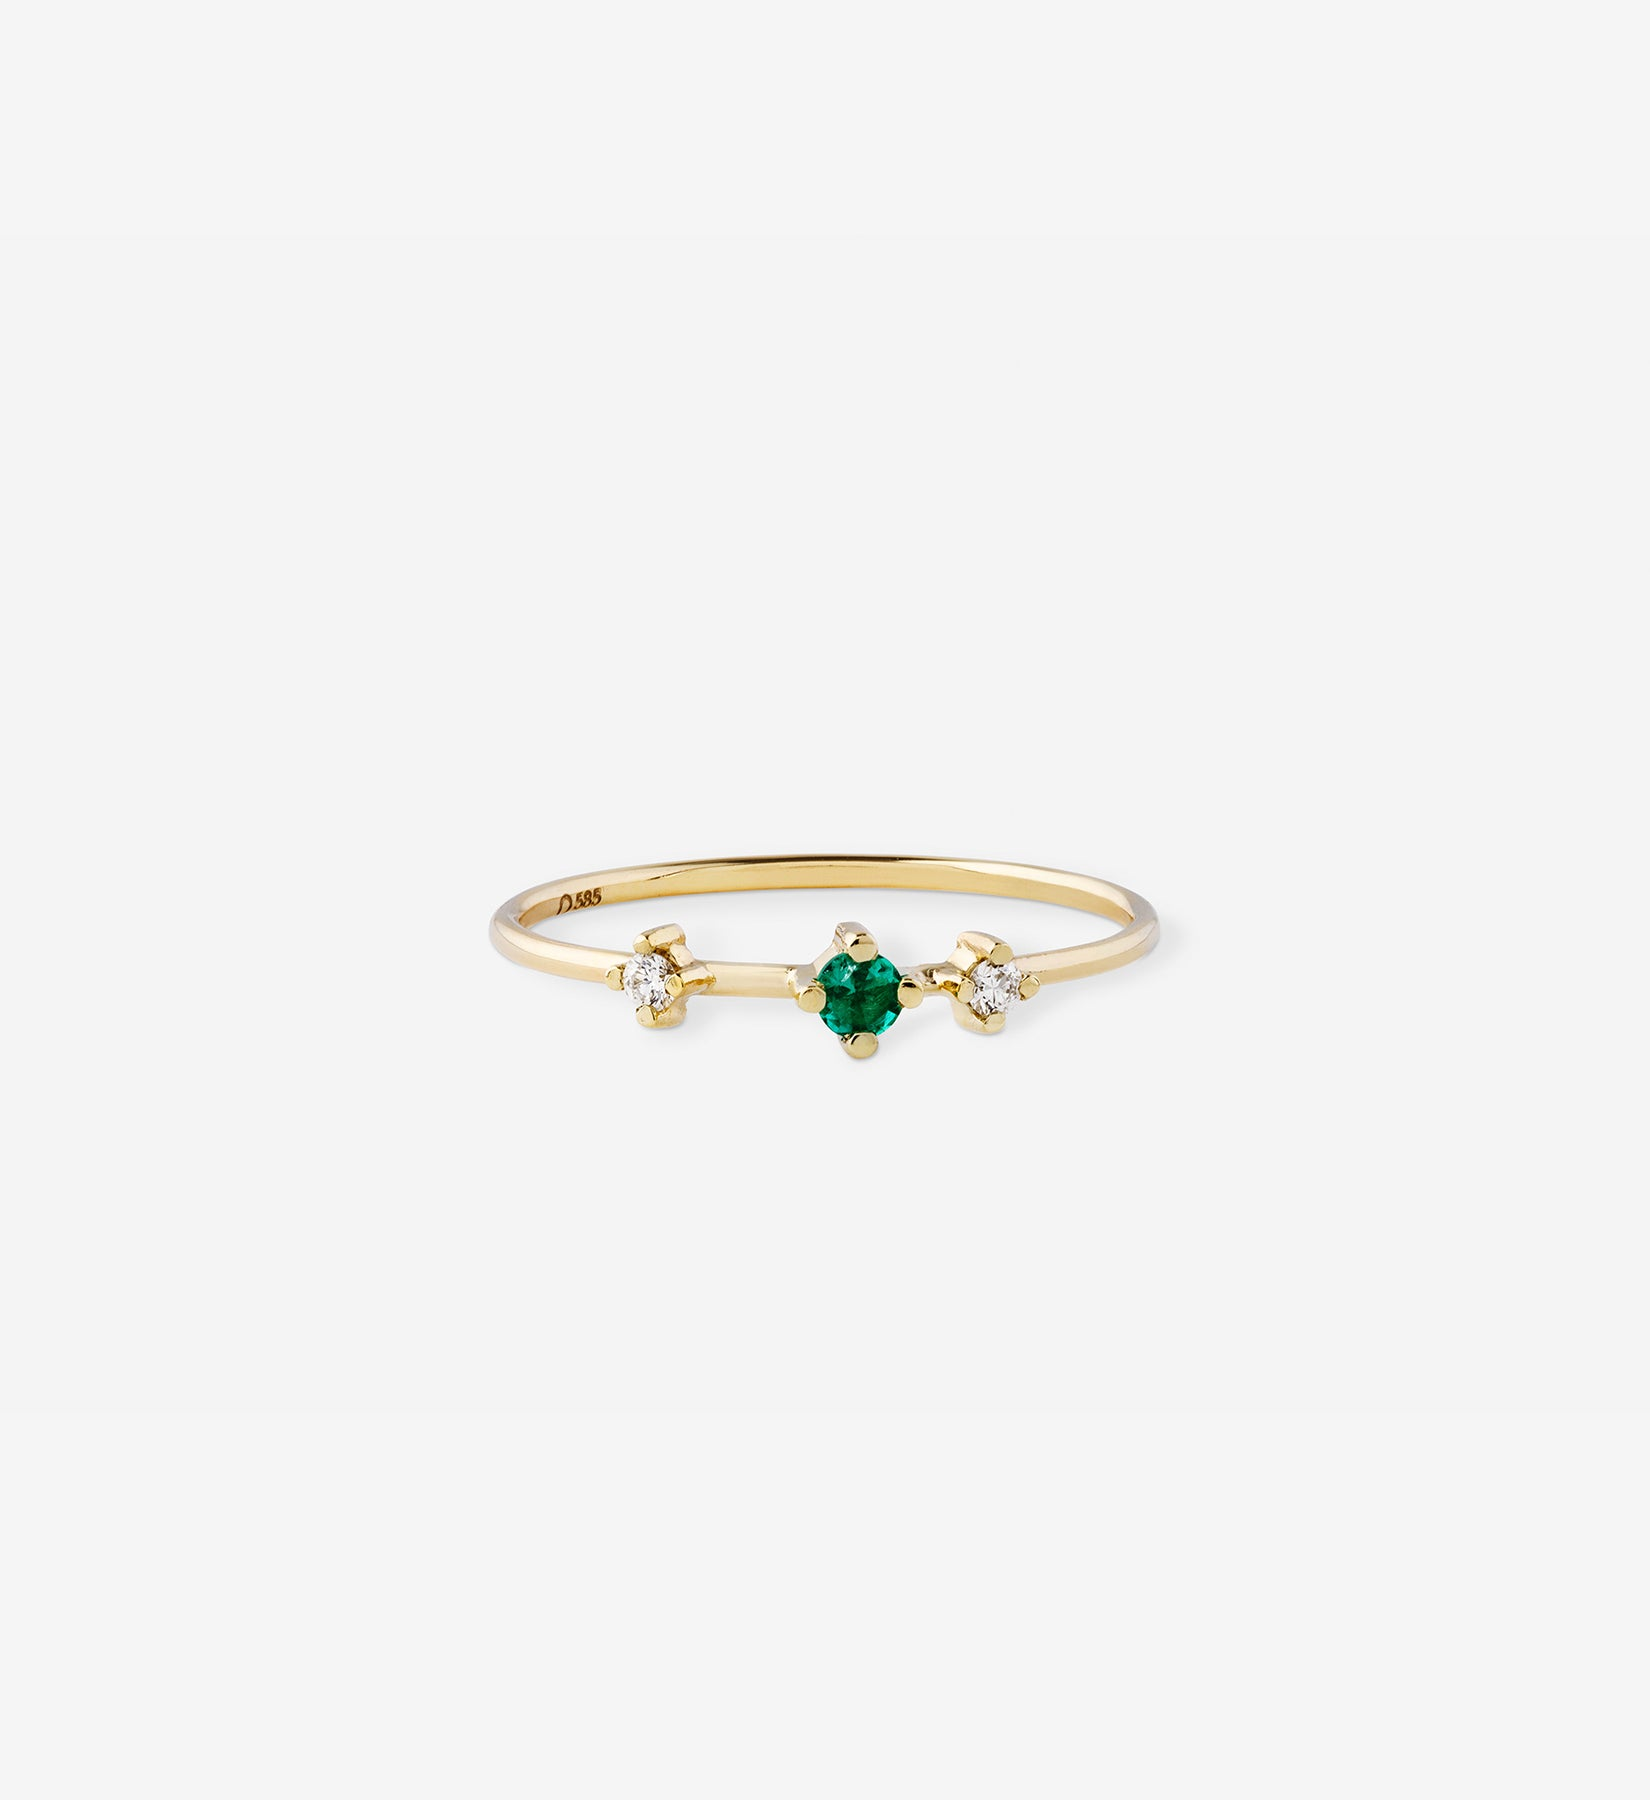 Double Diamond Emerald Ring 0.09 in 14K Gold